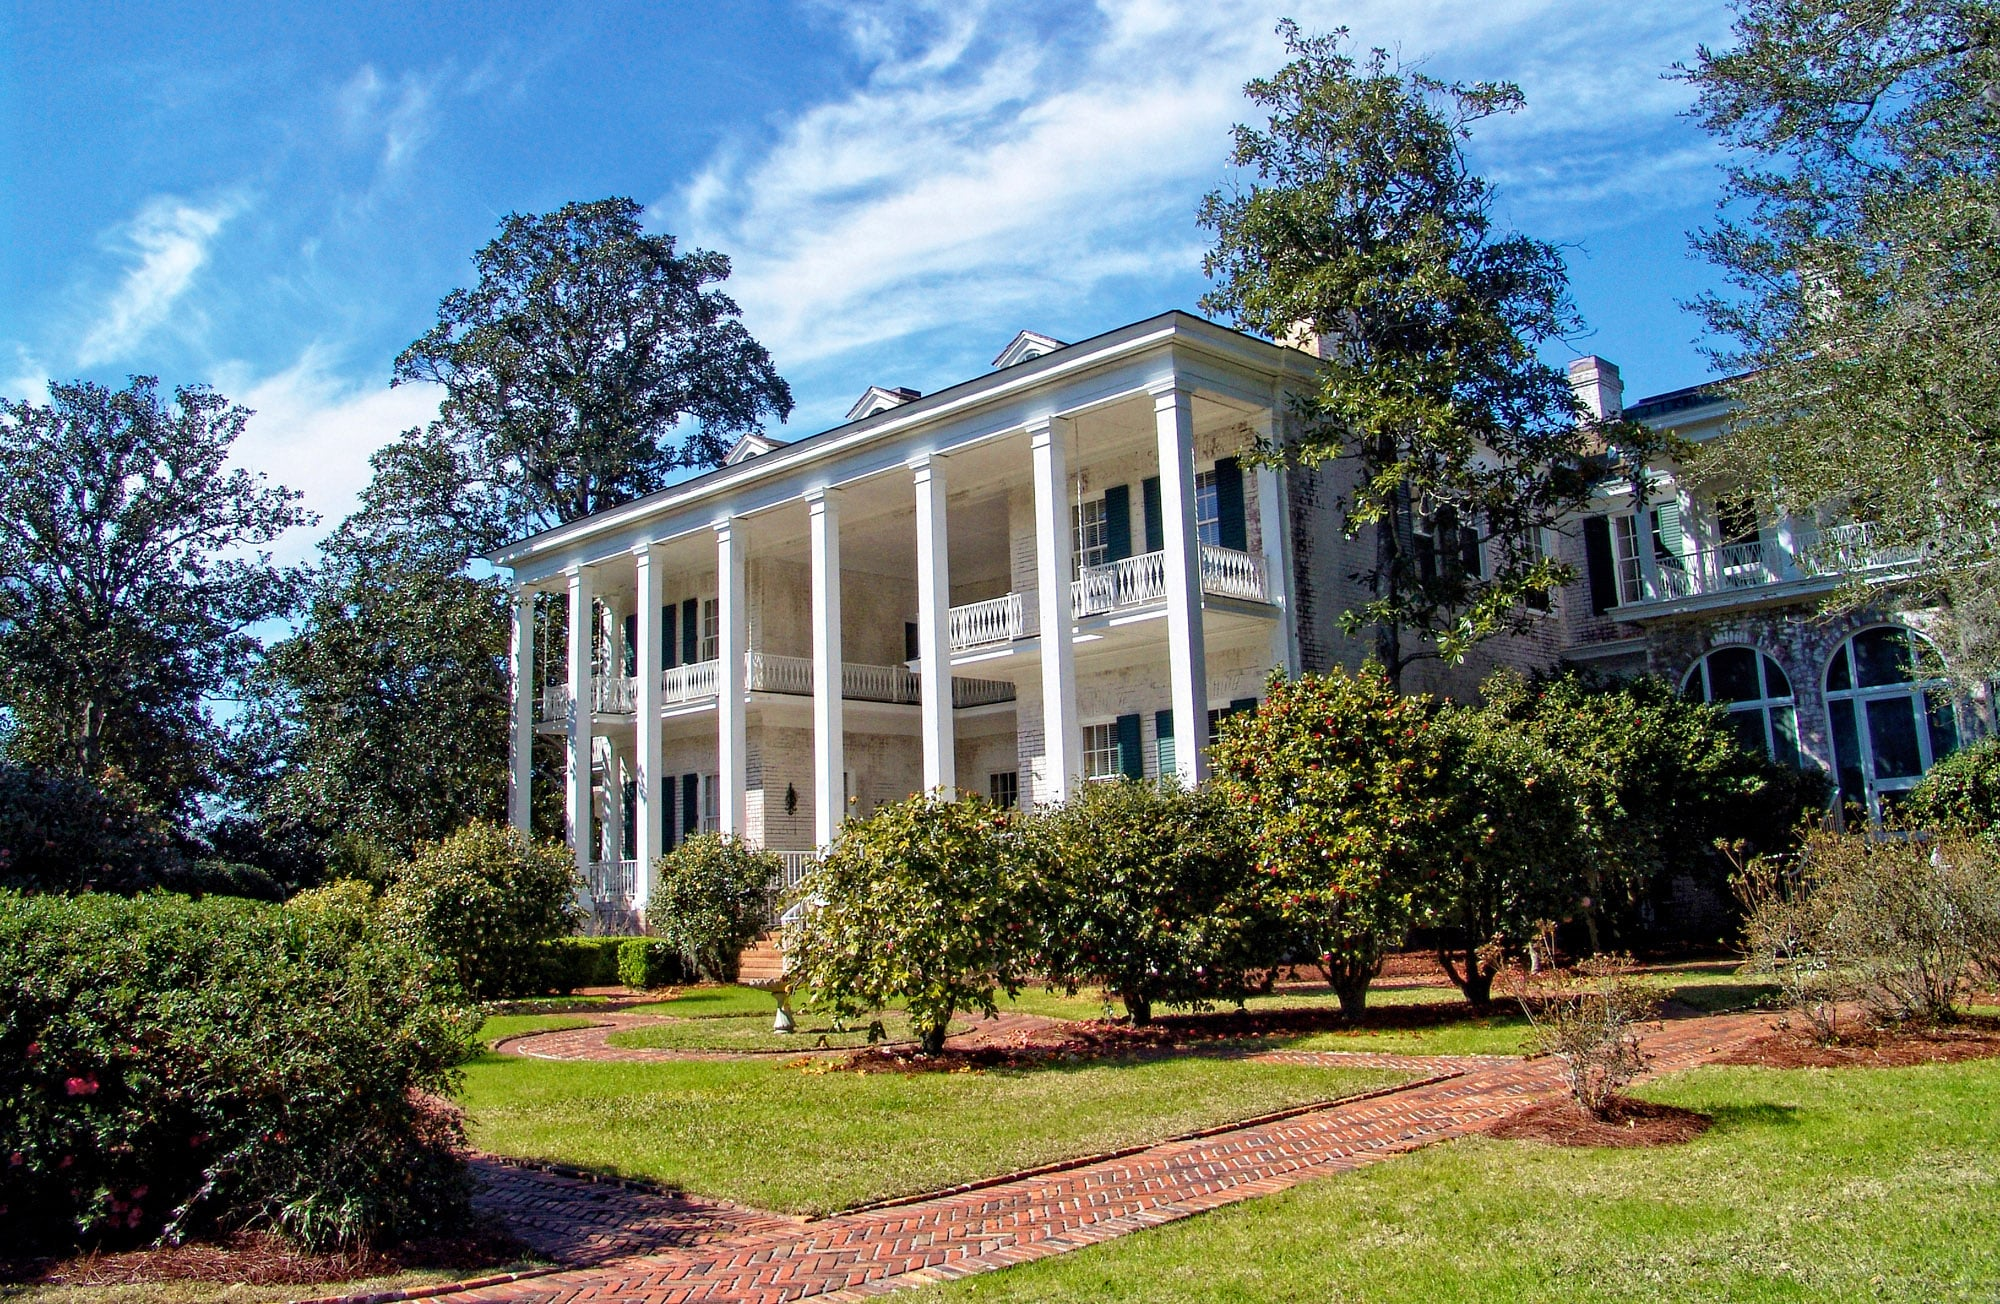 Pebble Hill Plantation in Thomasville, Georgia